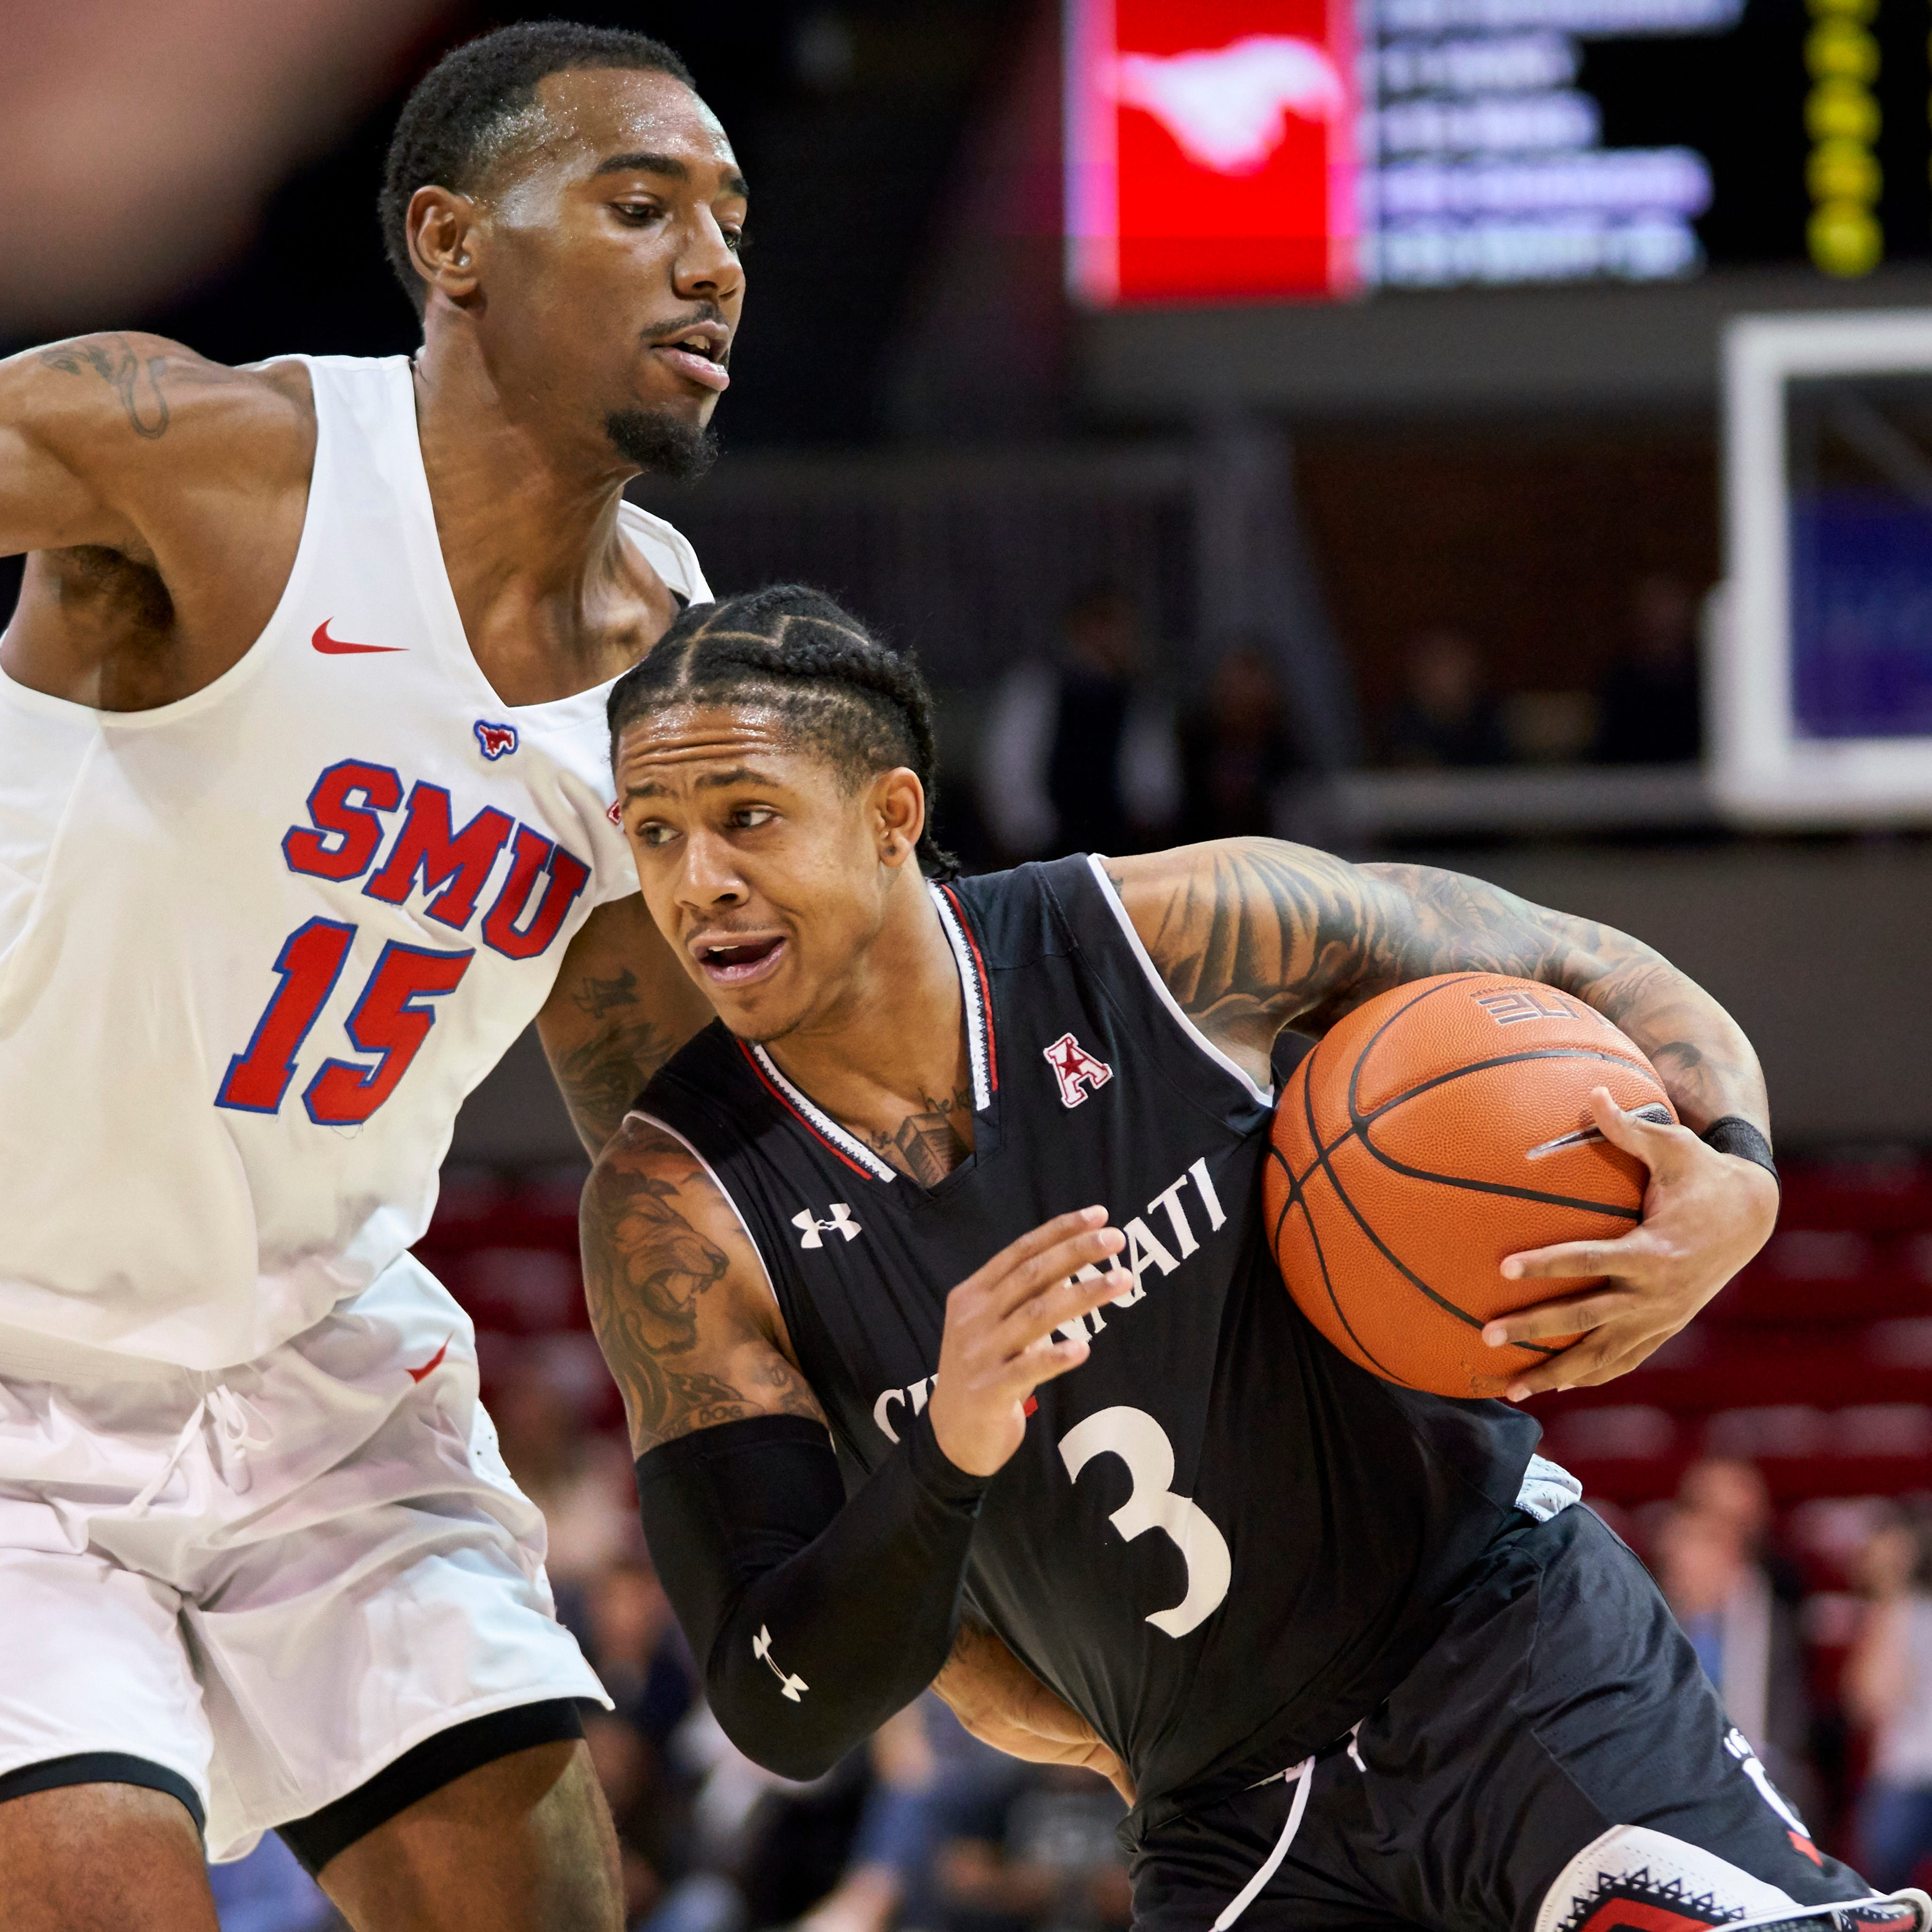 University of Cincinnati Bearcats win ugly game at SMU, secure bye in AAC tourney